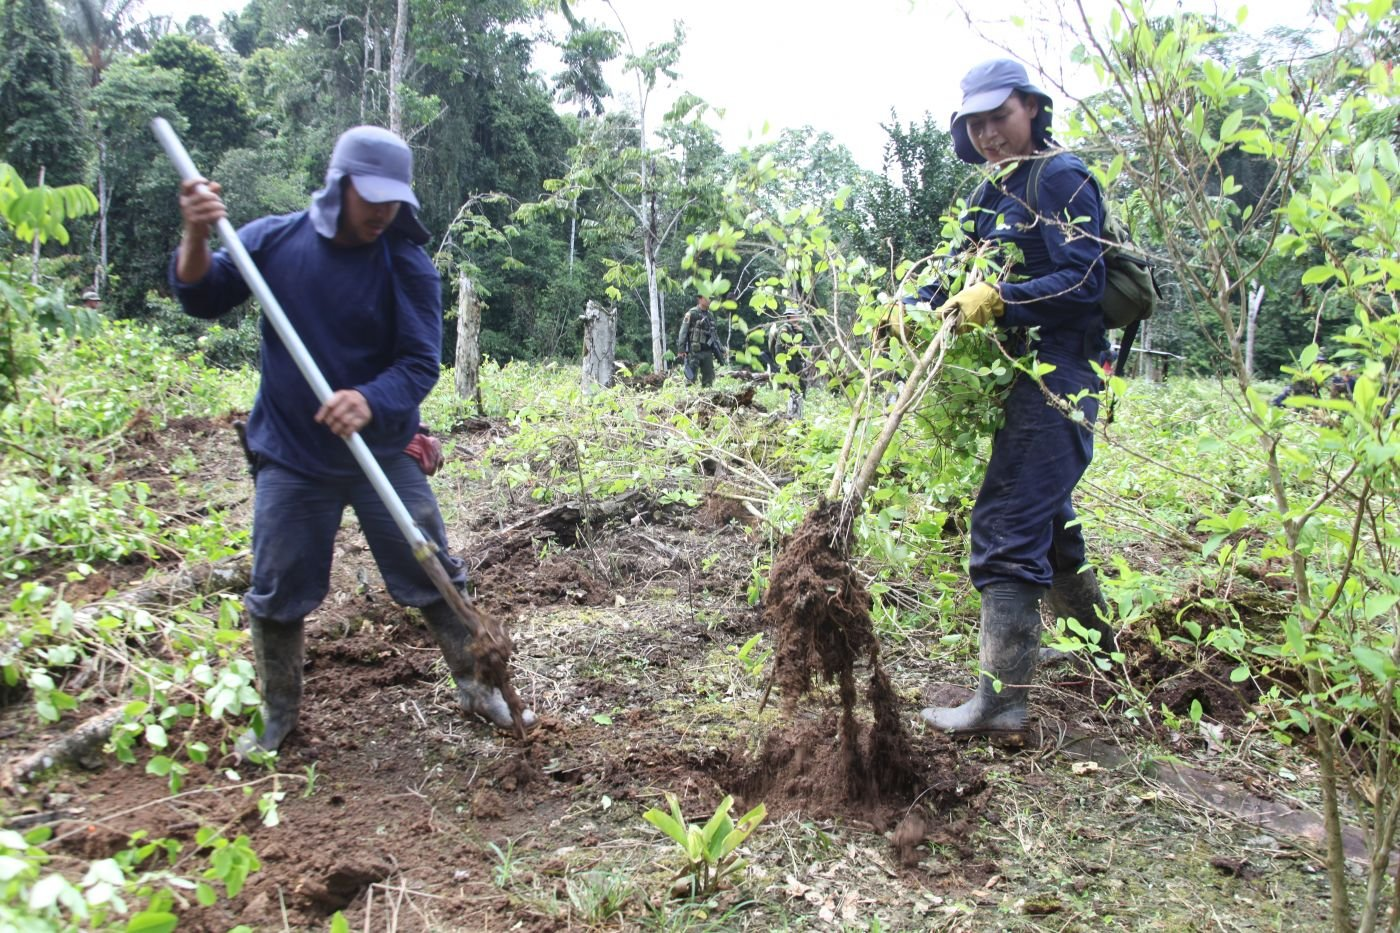 Colombian Security Forces Focus on Crop Substitution in Fight Against Drug Trafficking